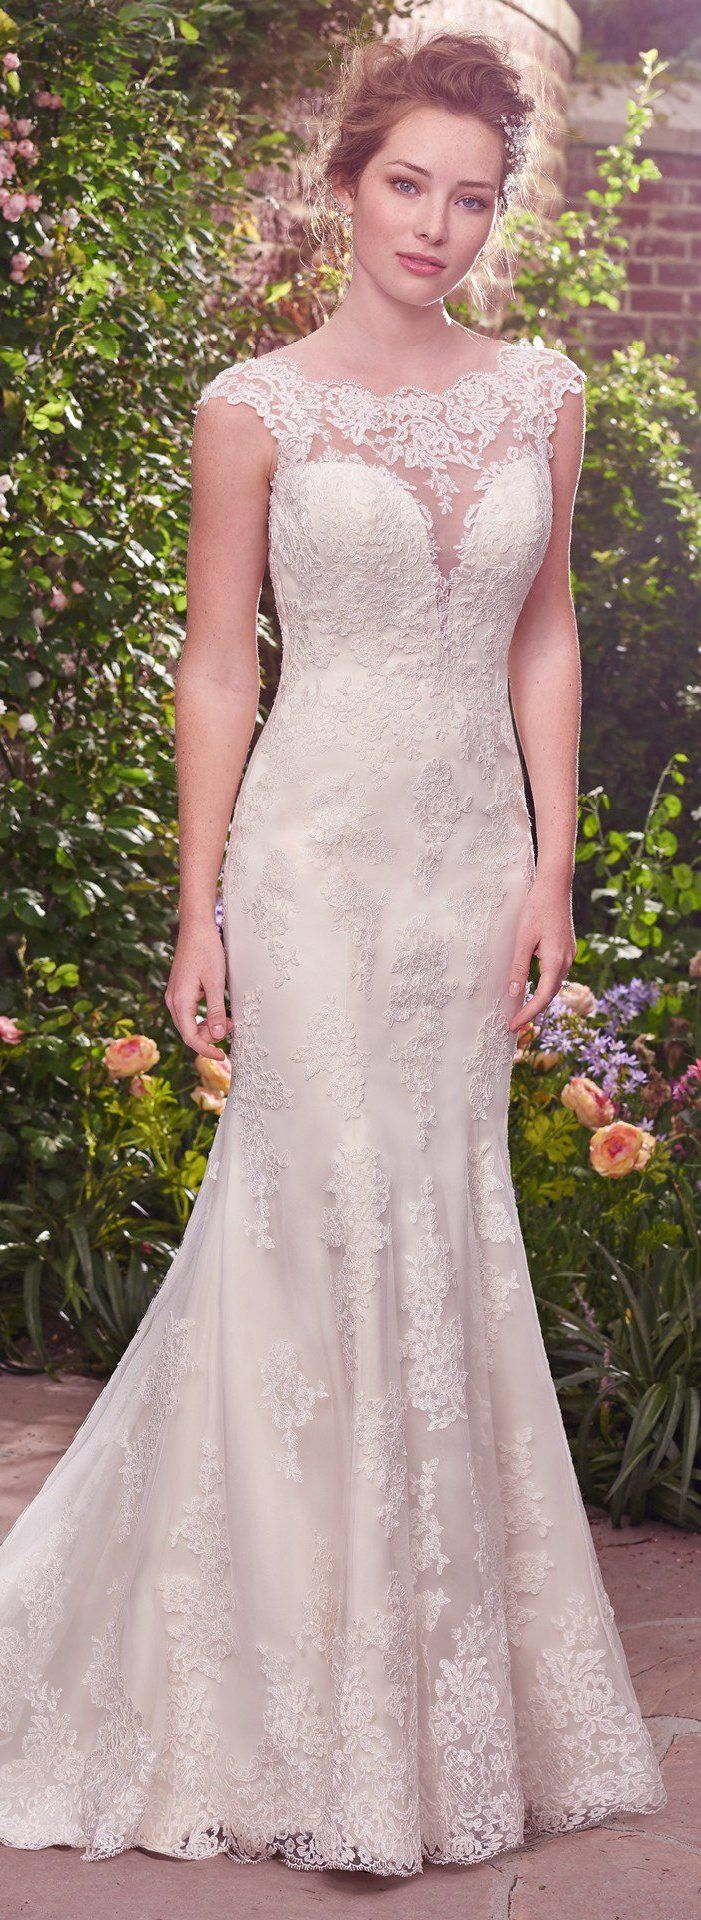 Wedding Dress by Rebecca Ingram - Julie | Less than $1,000 | #rebeccaingram #rebeccabride